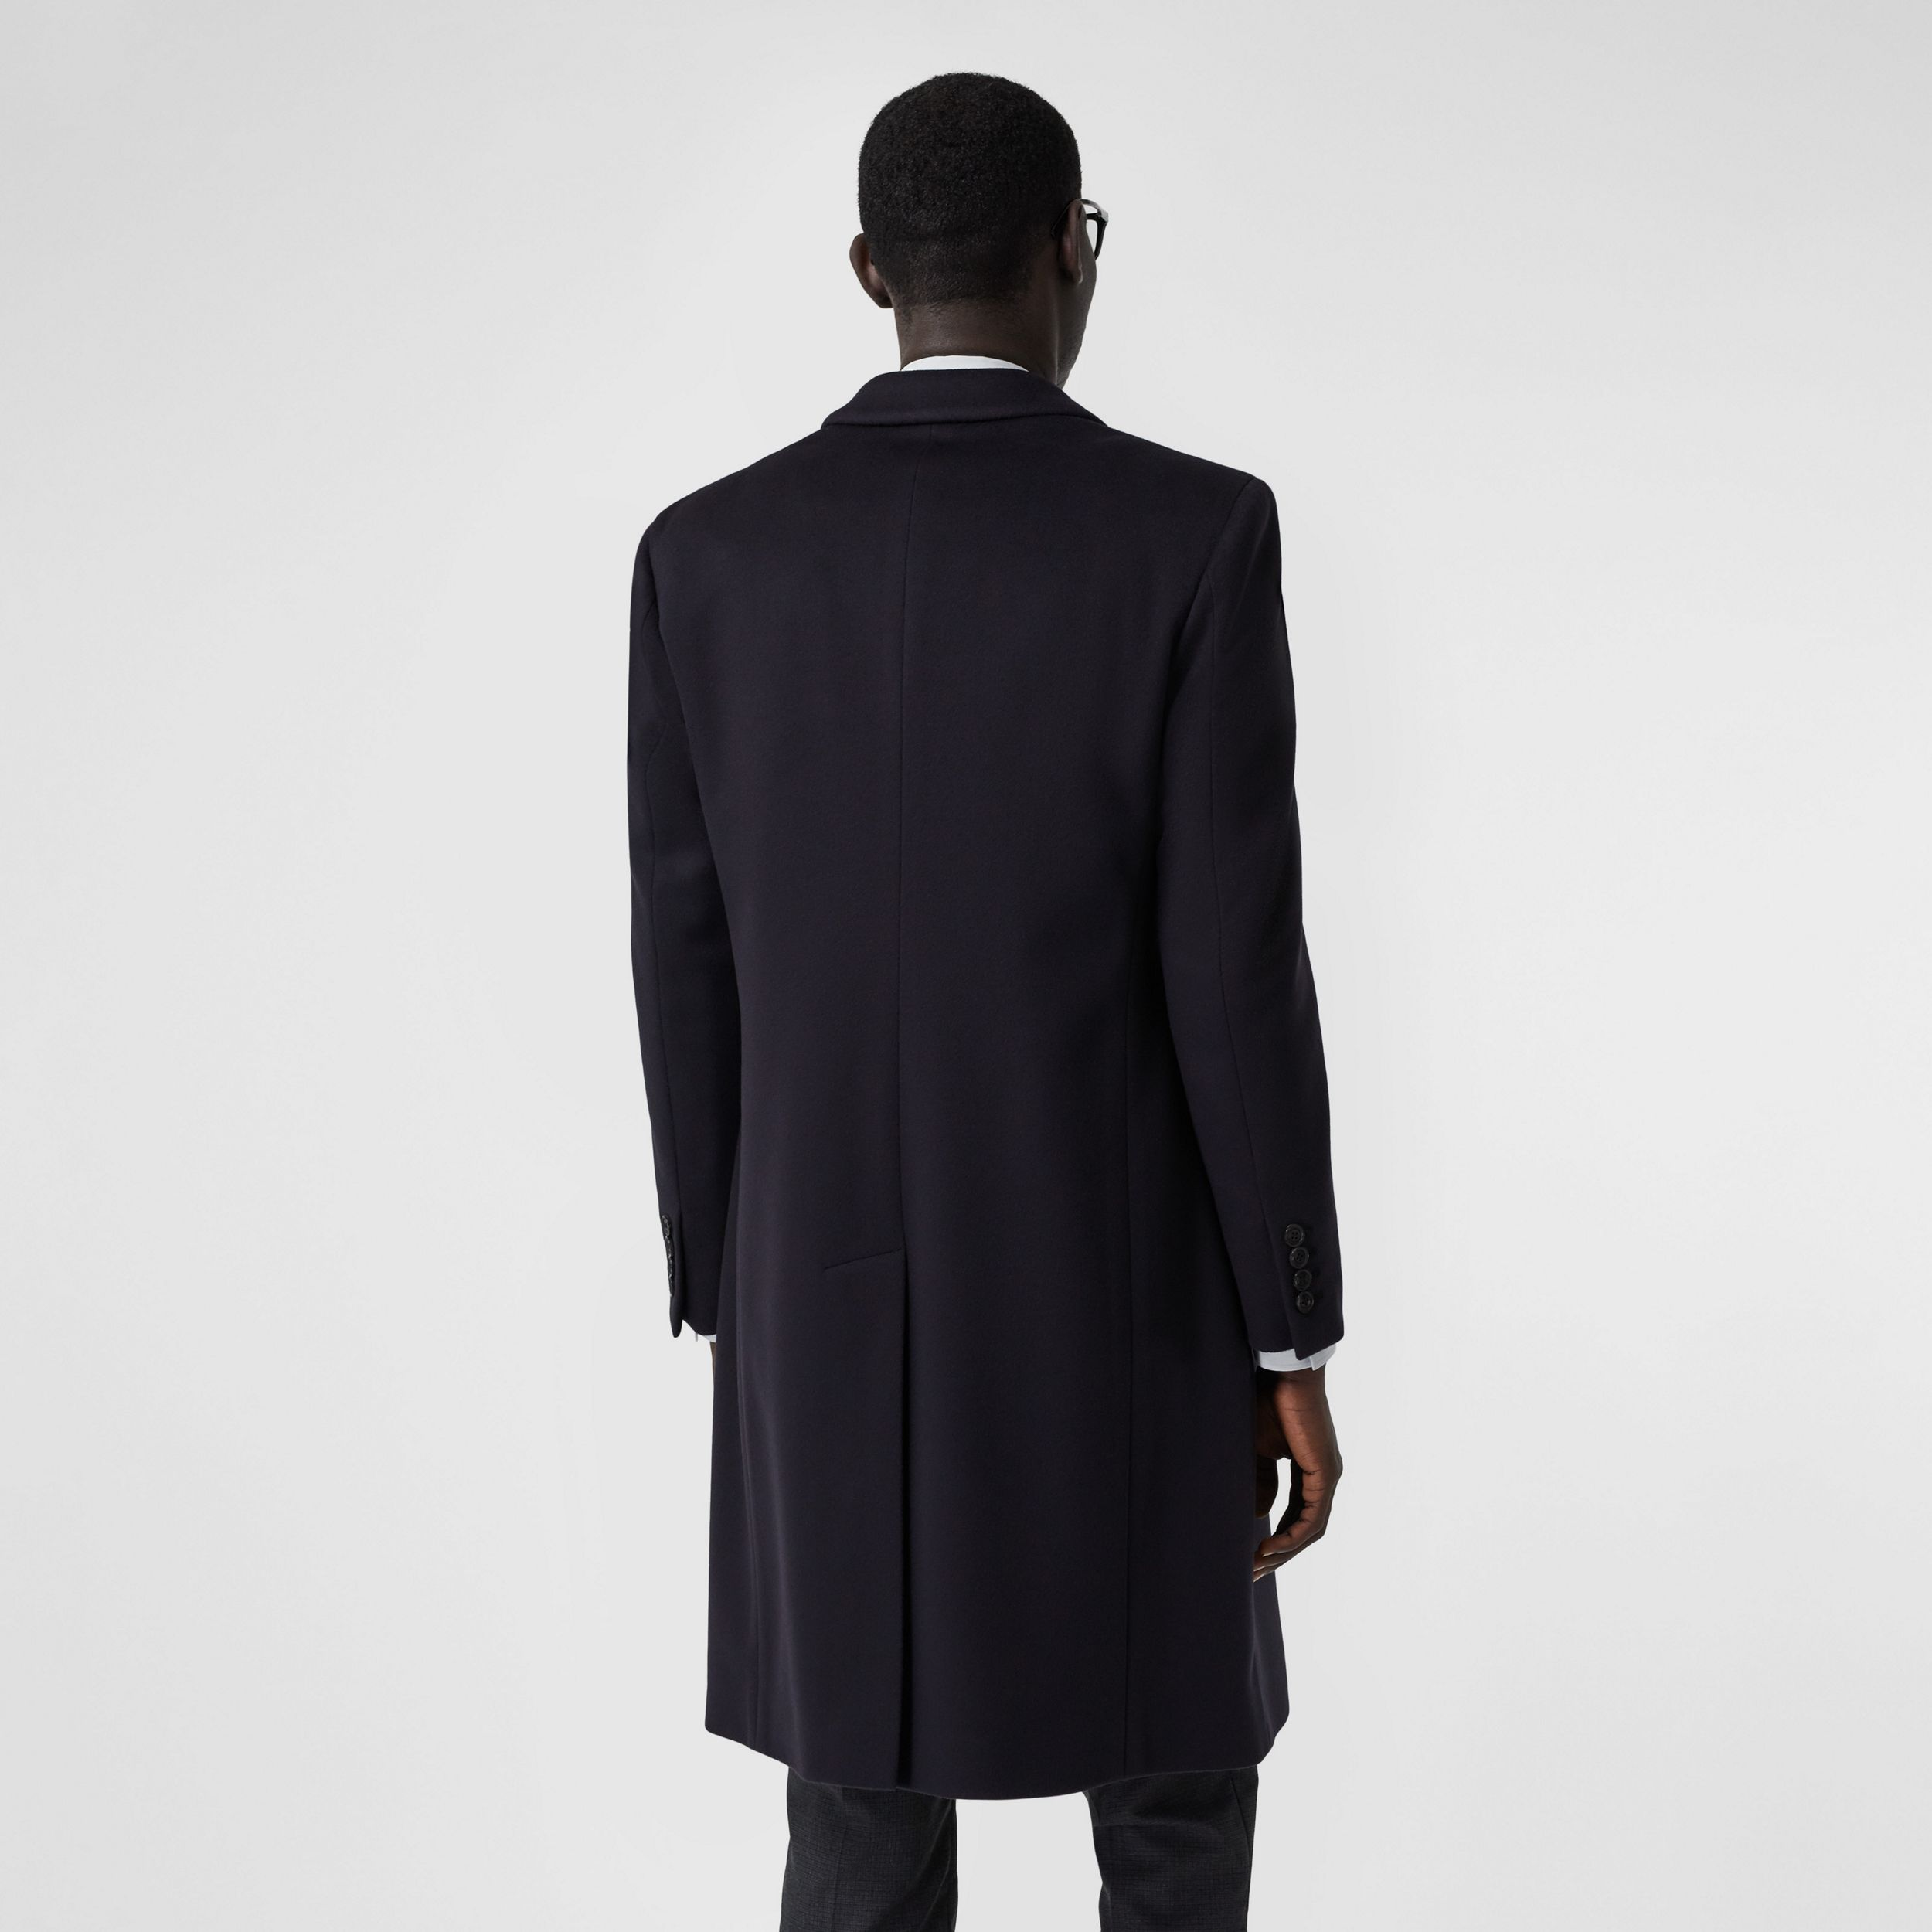 Wool Cashmere Tailored Coat in Navy - Men | Burberry - 3